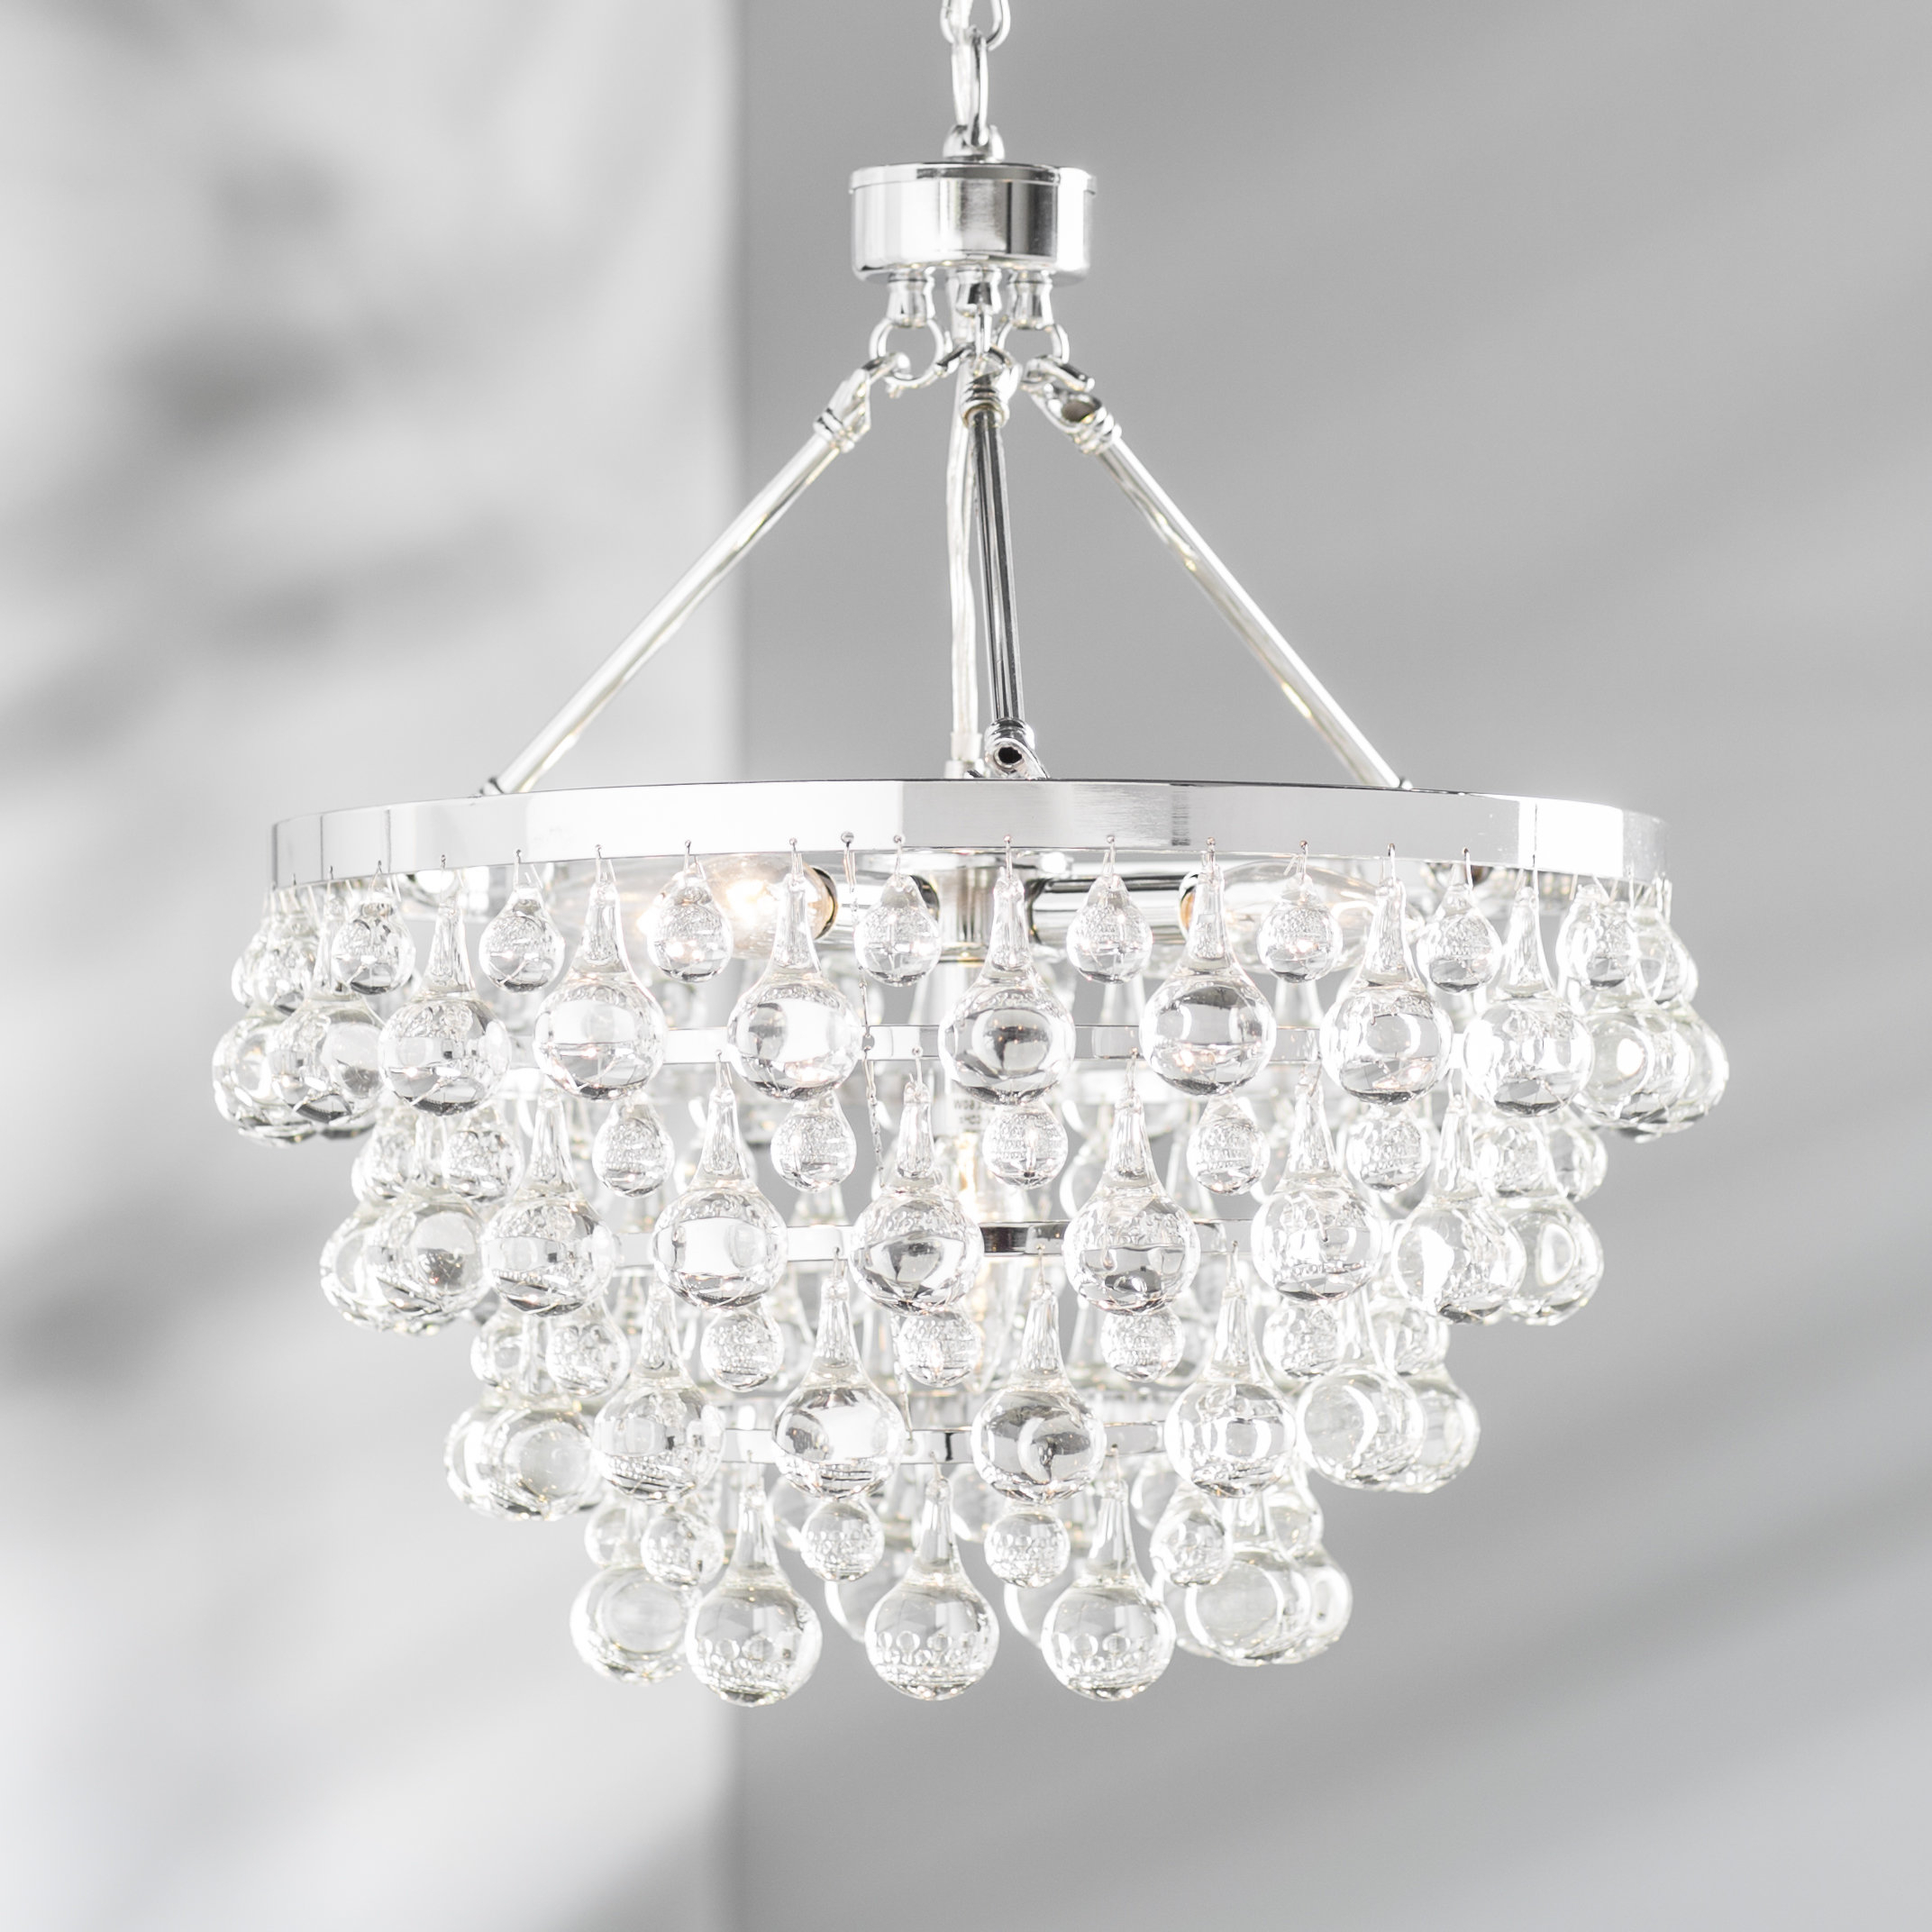 Verdell 5 Light Crystal Chandeliers Within Most Recent Ahern 5 Light Crystal Chandelier (View 17 of 20)